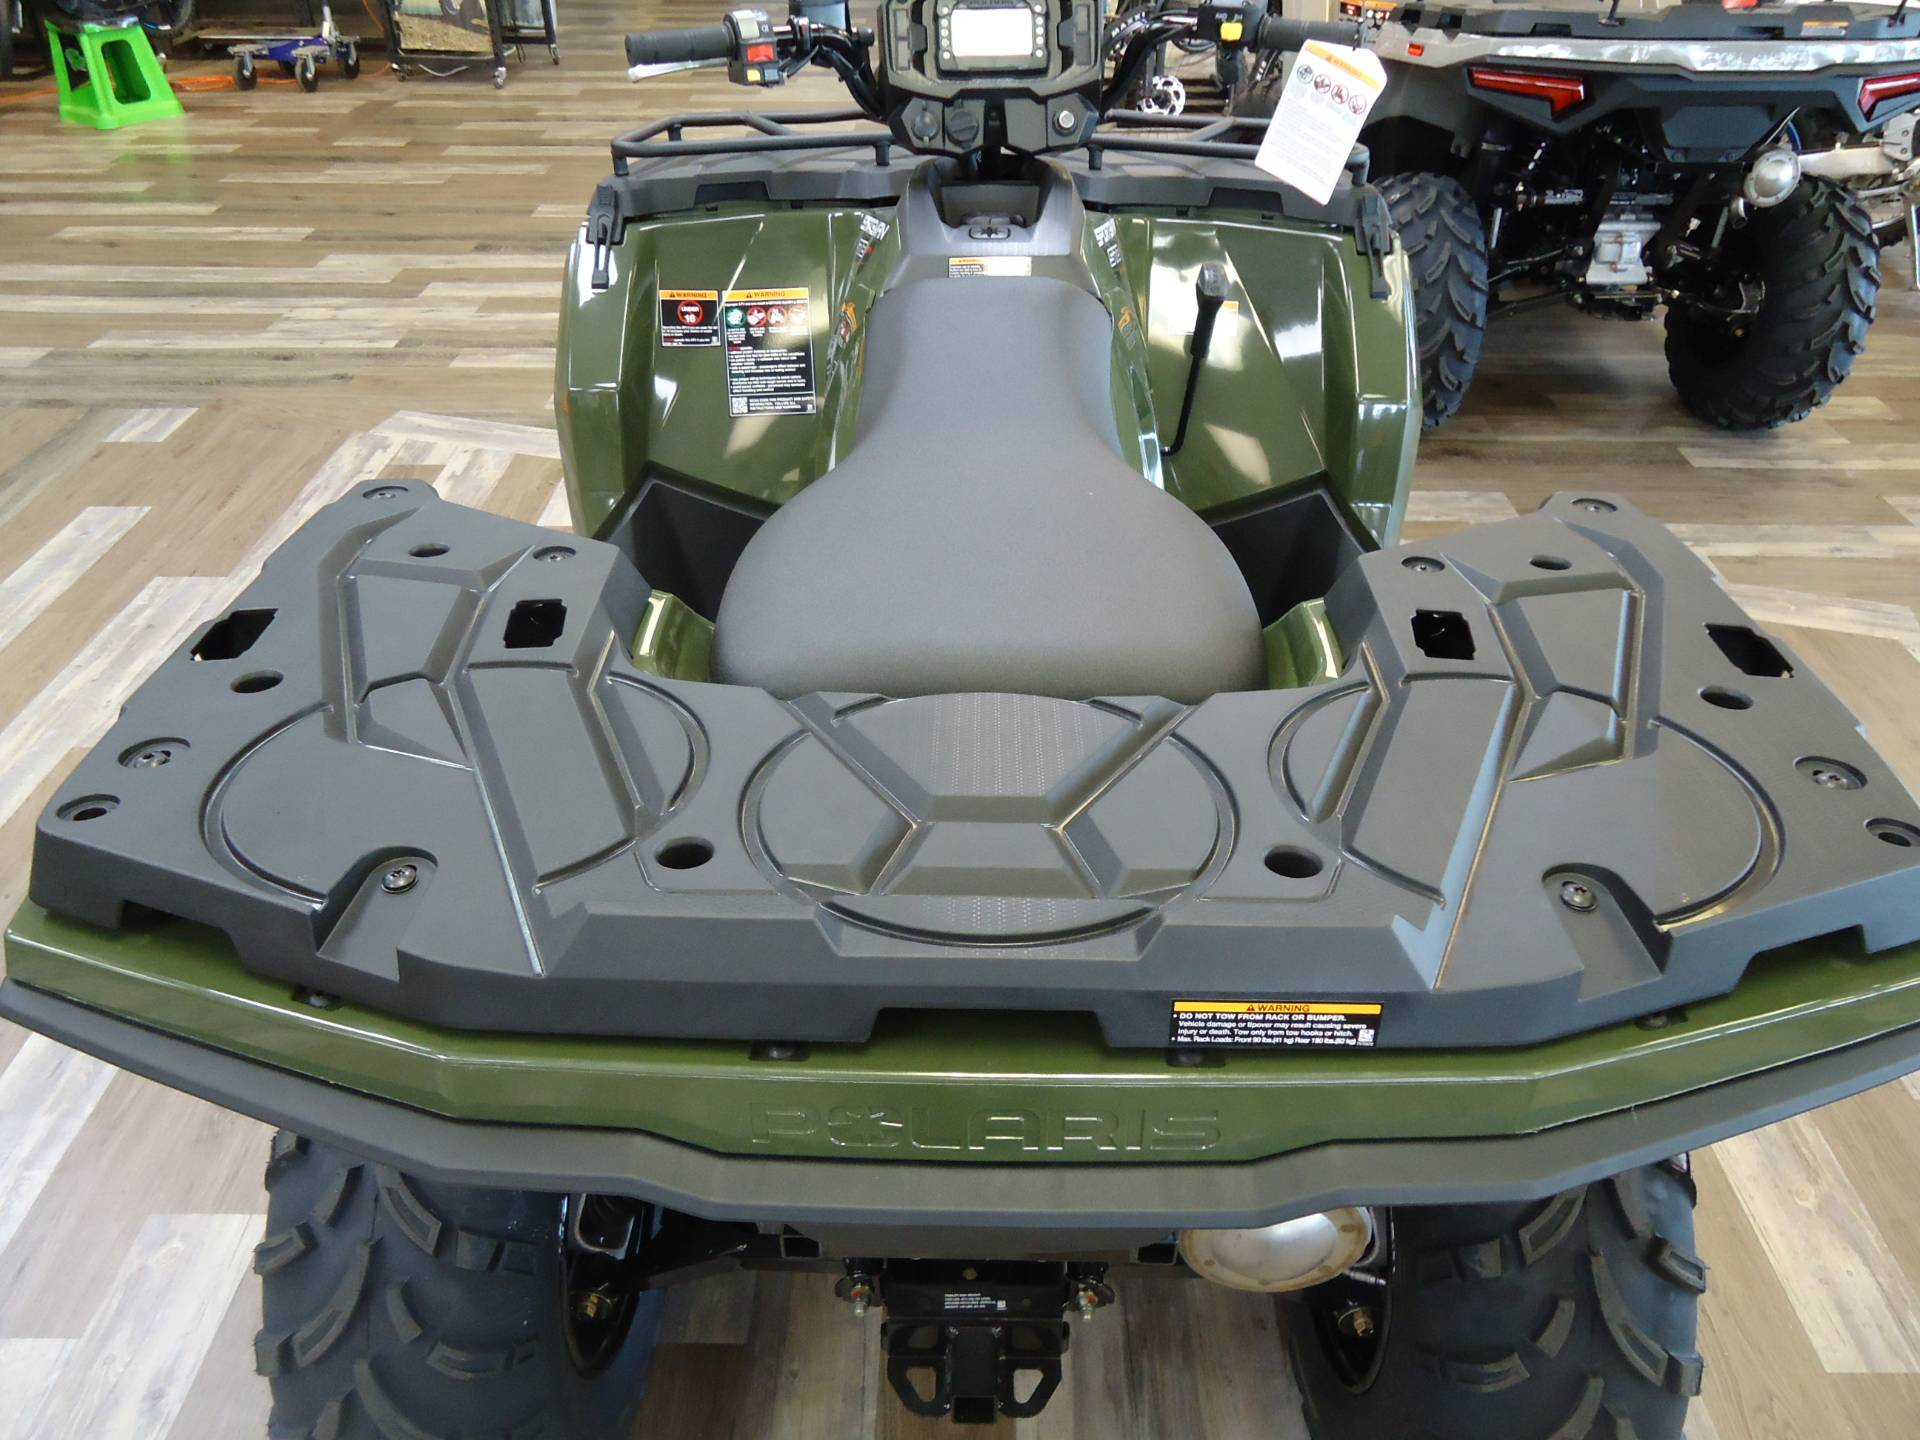 2021 Polaris Sportsman 570 in Denver, Colorado - Photo 5